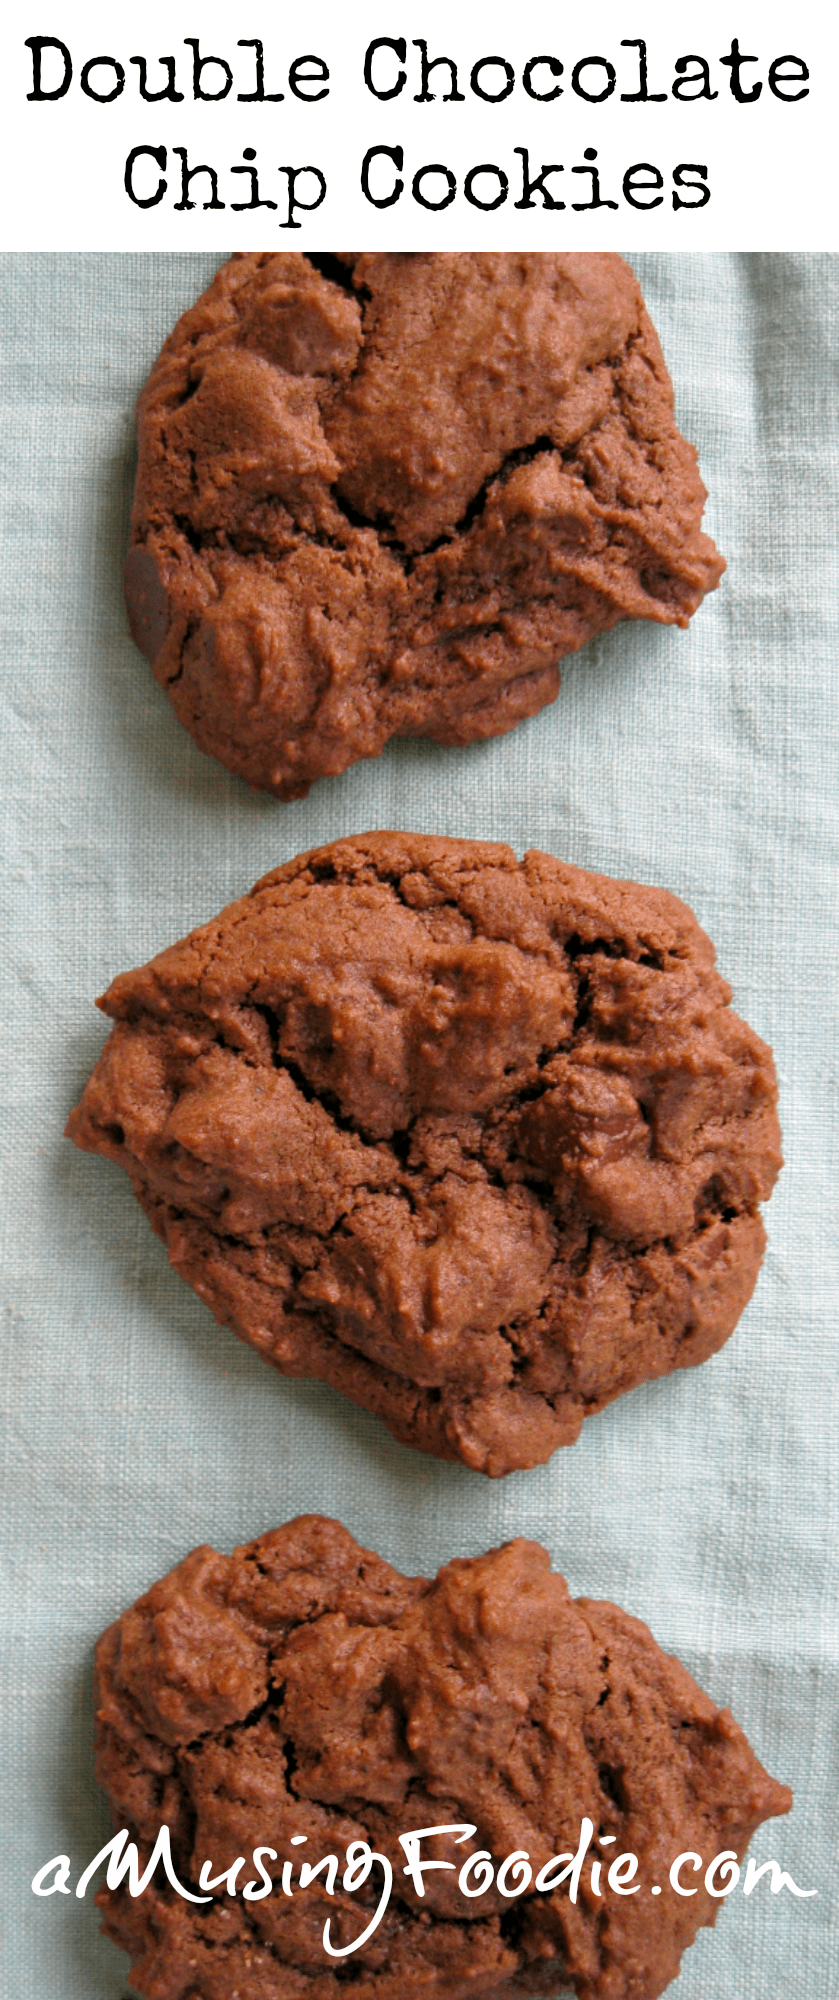 how to make subway double chocolate chip cookies